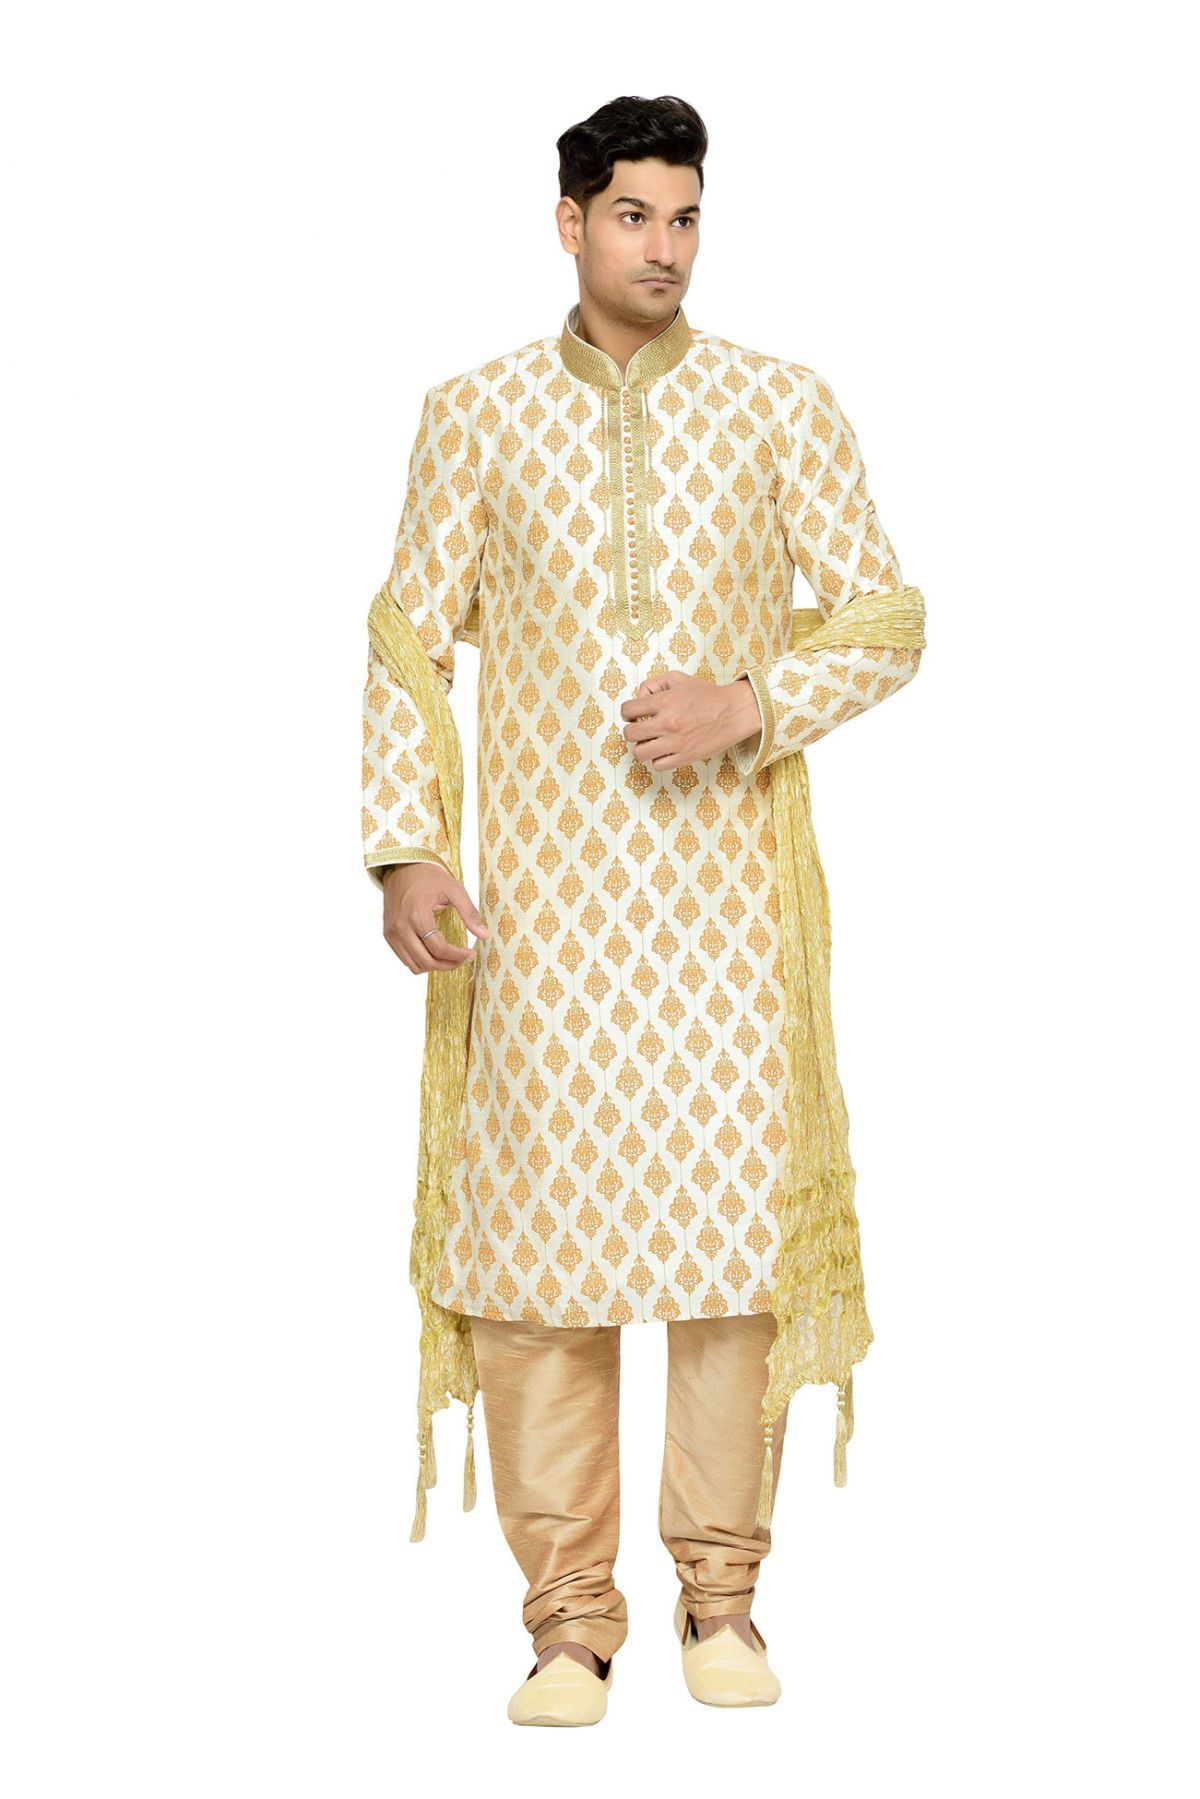 503adfadce Dhupion Wedding Wear Kurta Pajama In Cream Colour This Kurta Pajama Is  crafted with Embroidery This Kurta Pajama Comes As a stitched Which Can Be  Stitched ...